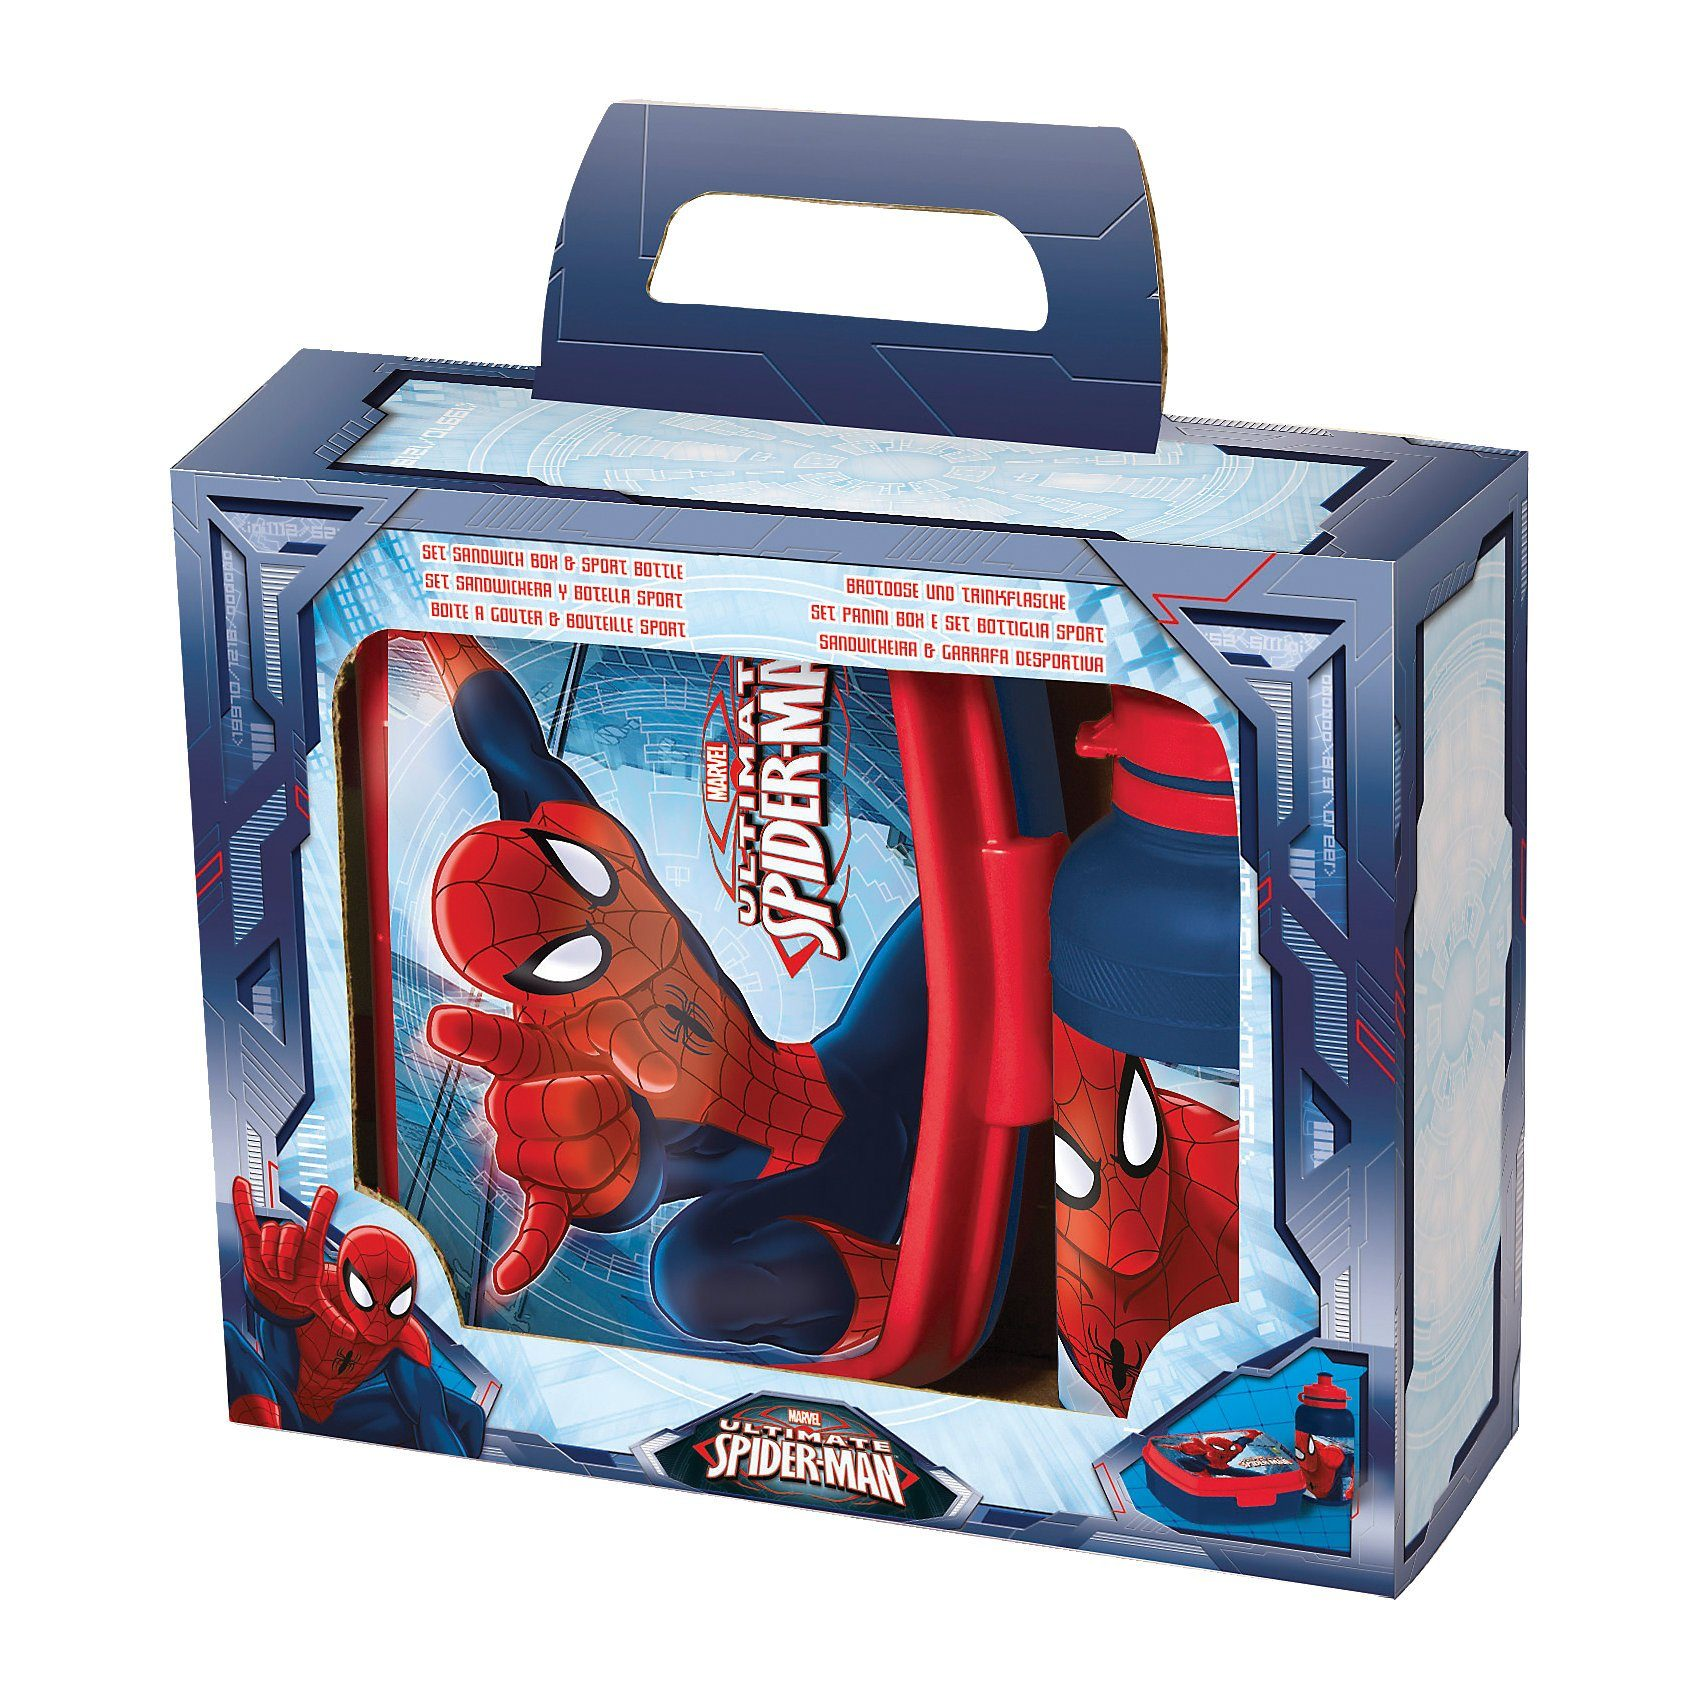 JOY TOY Pausenset Spiderman, 2-tlg.